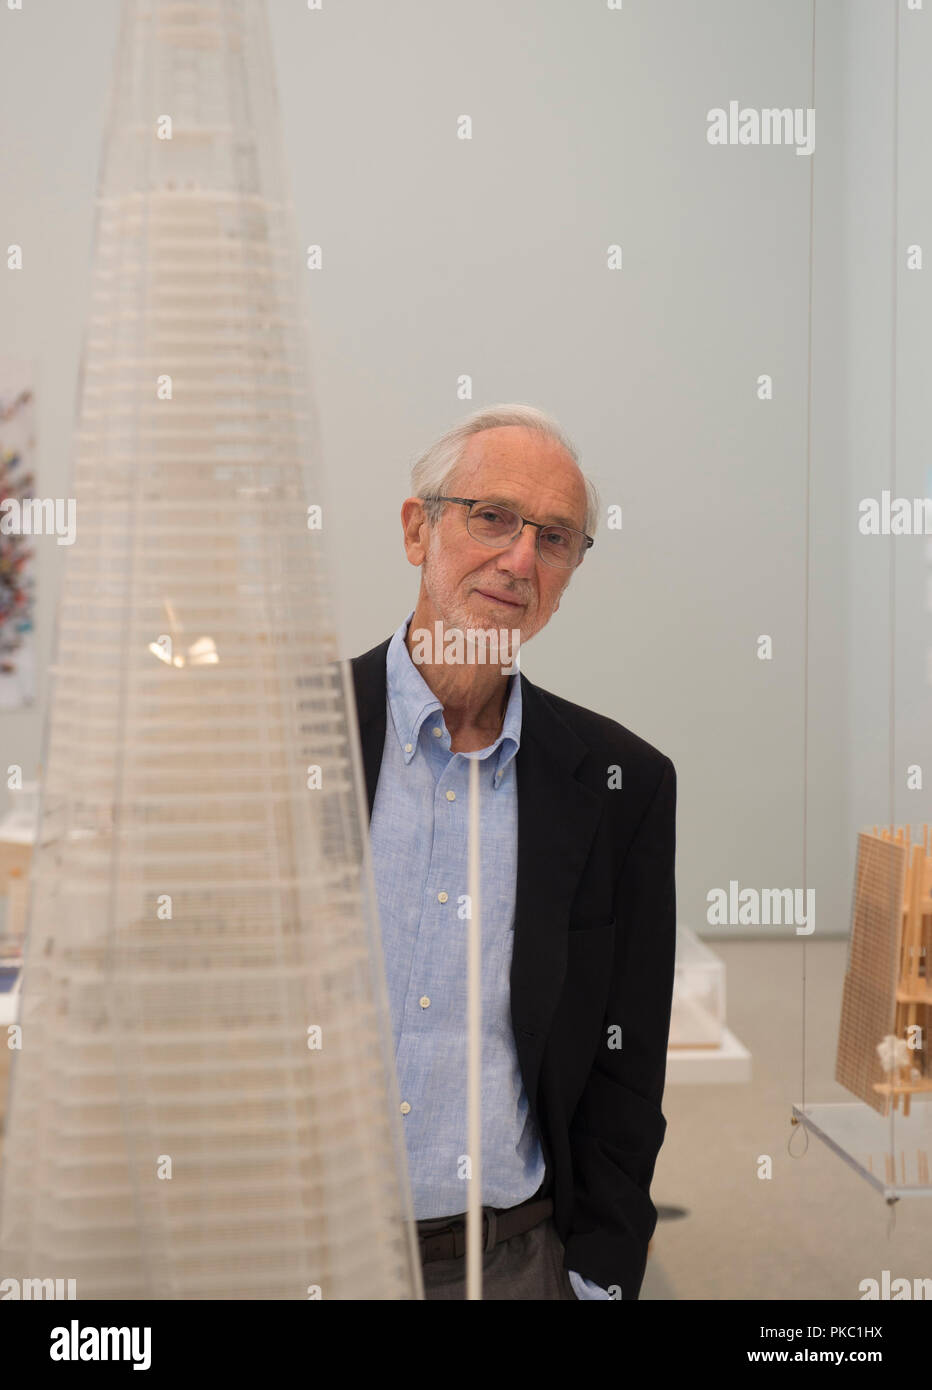 RA, Piccadilly, London, UK. 12 September, 2018. The Art of Making Buildings. The internationally acclaimed Architect Renzo Piano (designer of The Shard) opens an exhibition of his work at the Royal Academy. Centrepiece of the exhibition is a sculptural installation bringing together over 100 of Piano's projects on an imaginary island. The exhibition runs from 15 September 2018 - 20 January 2019. Credit: Malcolm Park/Alamy Live News. - Stock Image